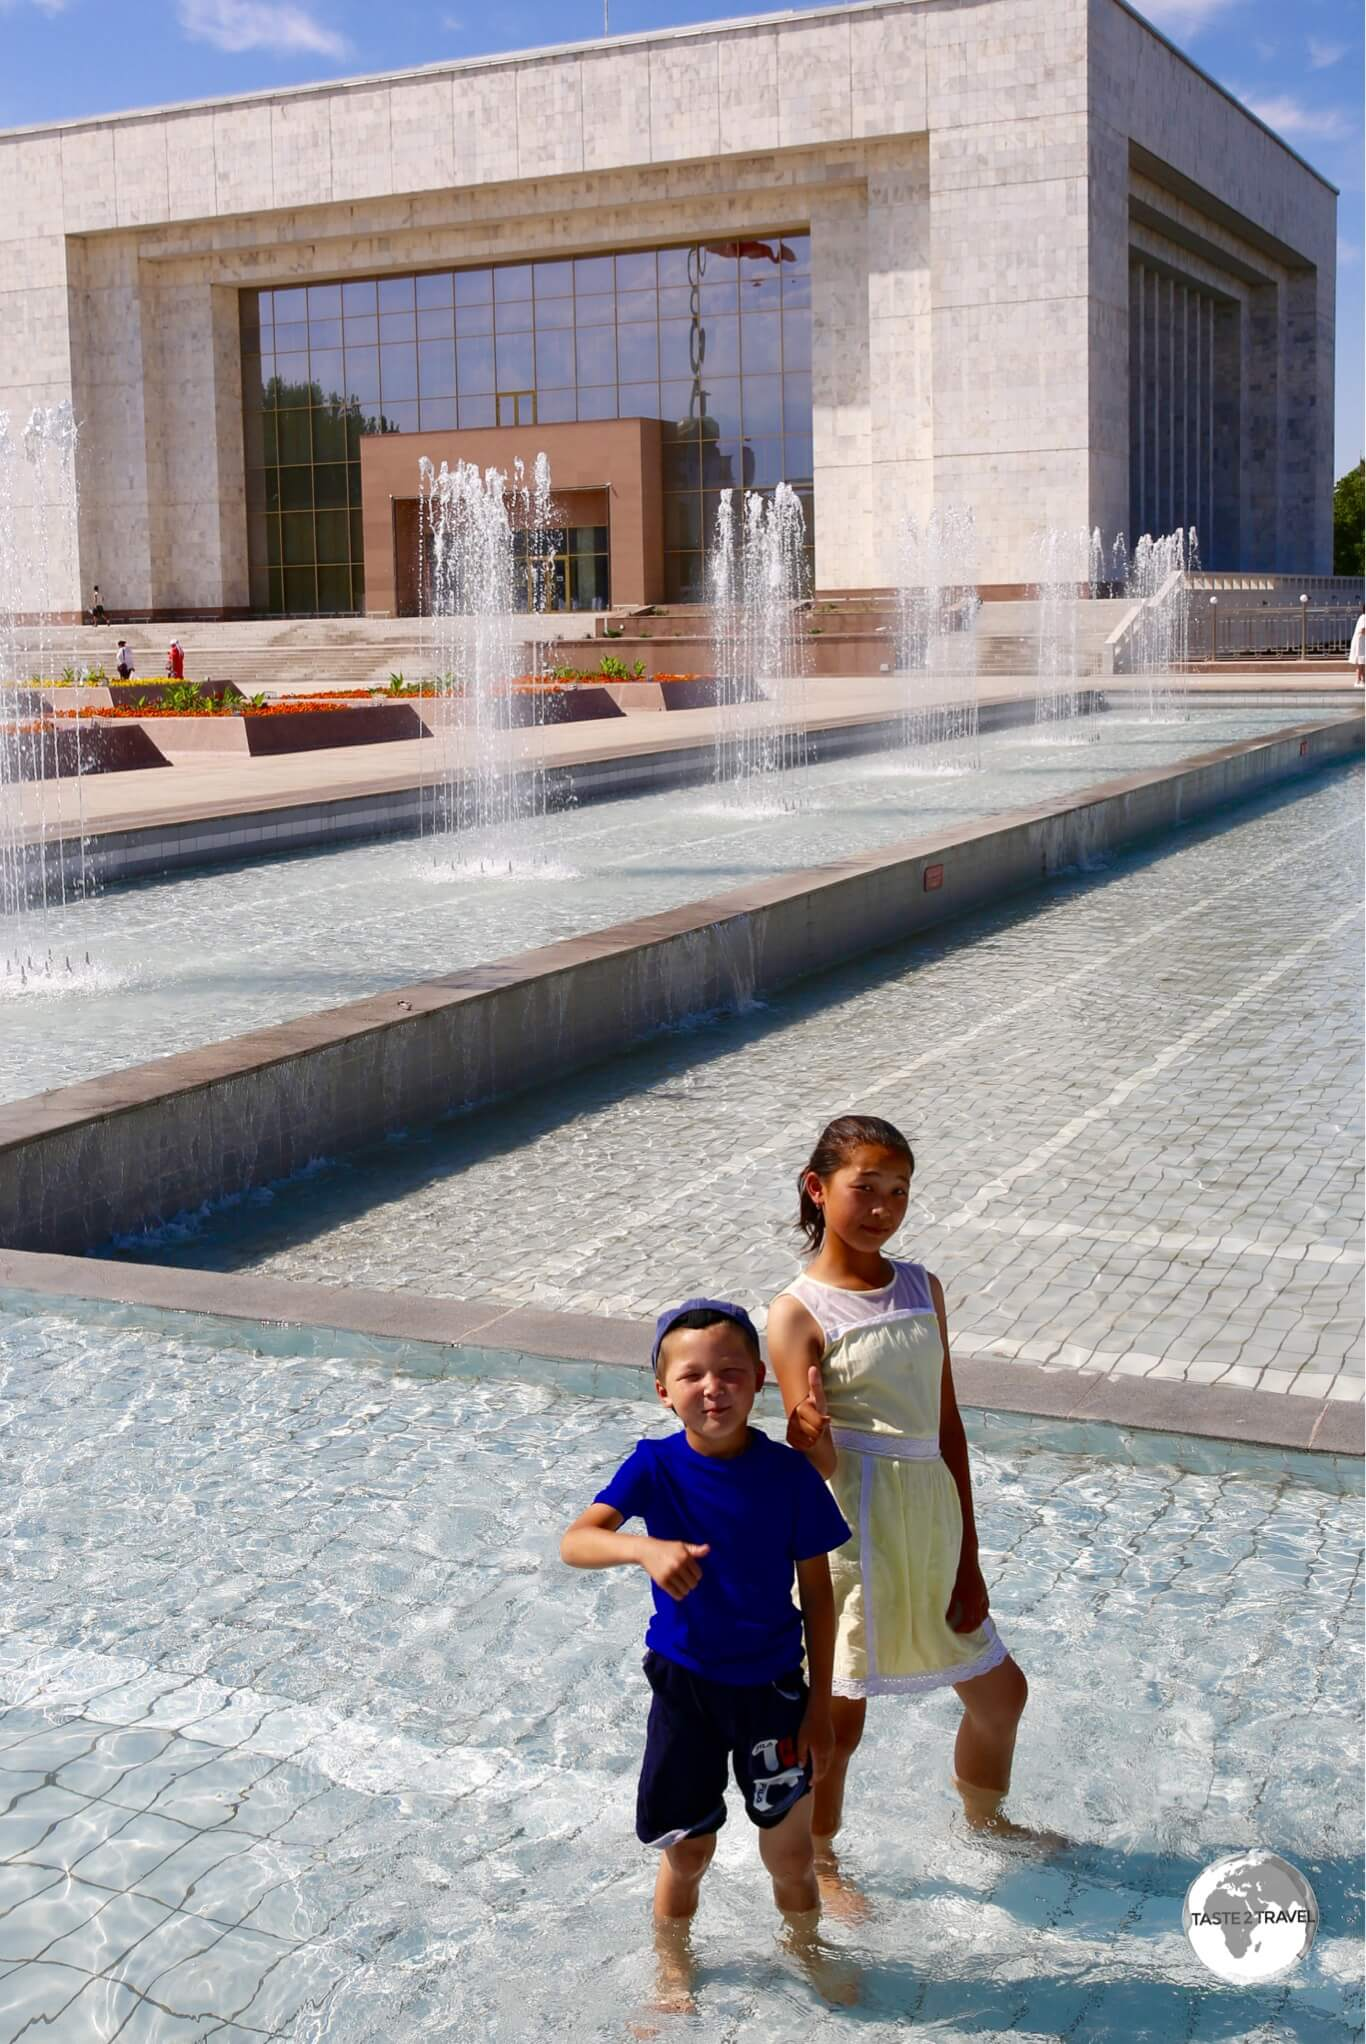 Children cooling off in one of many fountains which line Ala-Too square.